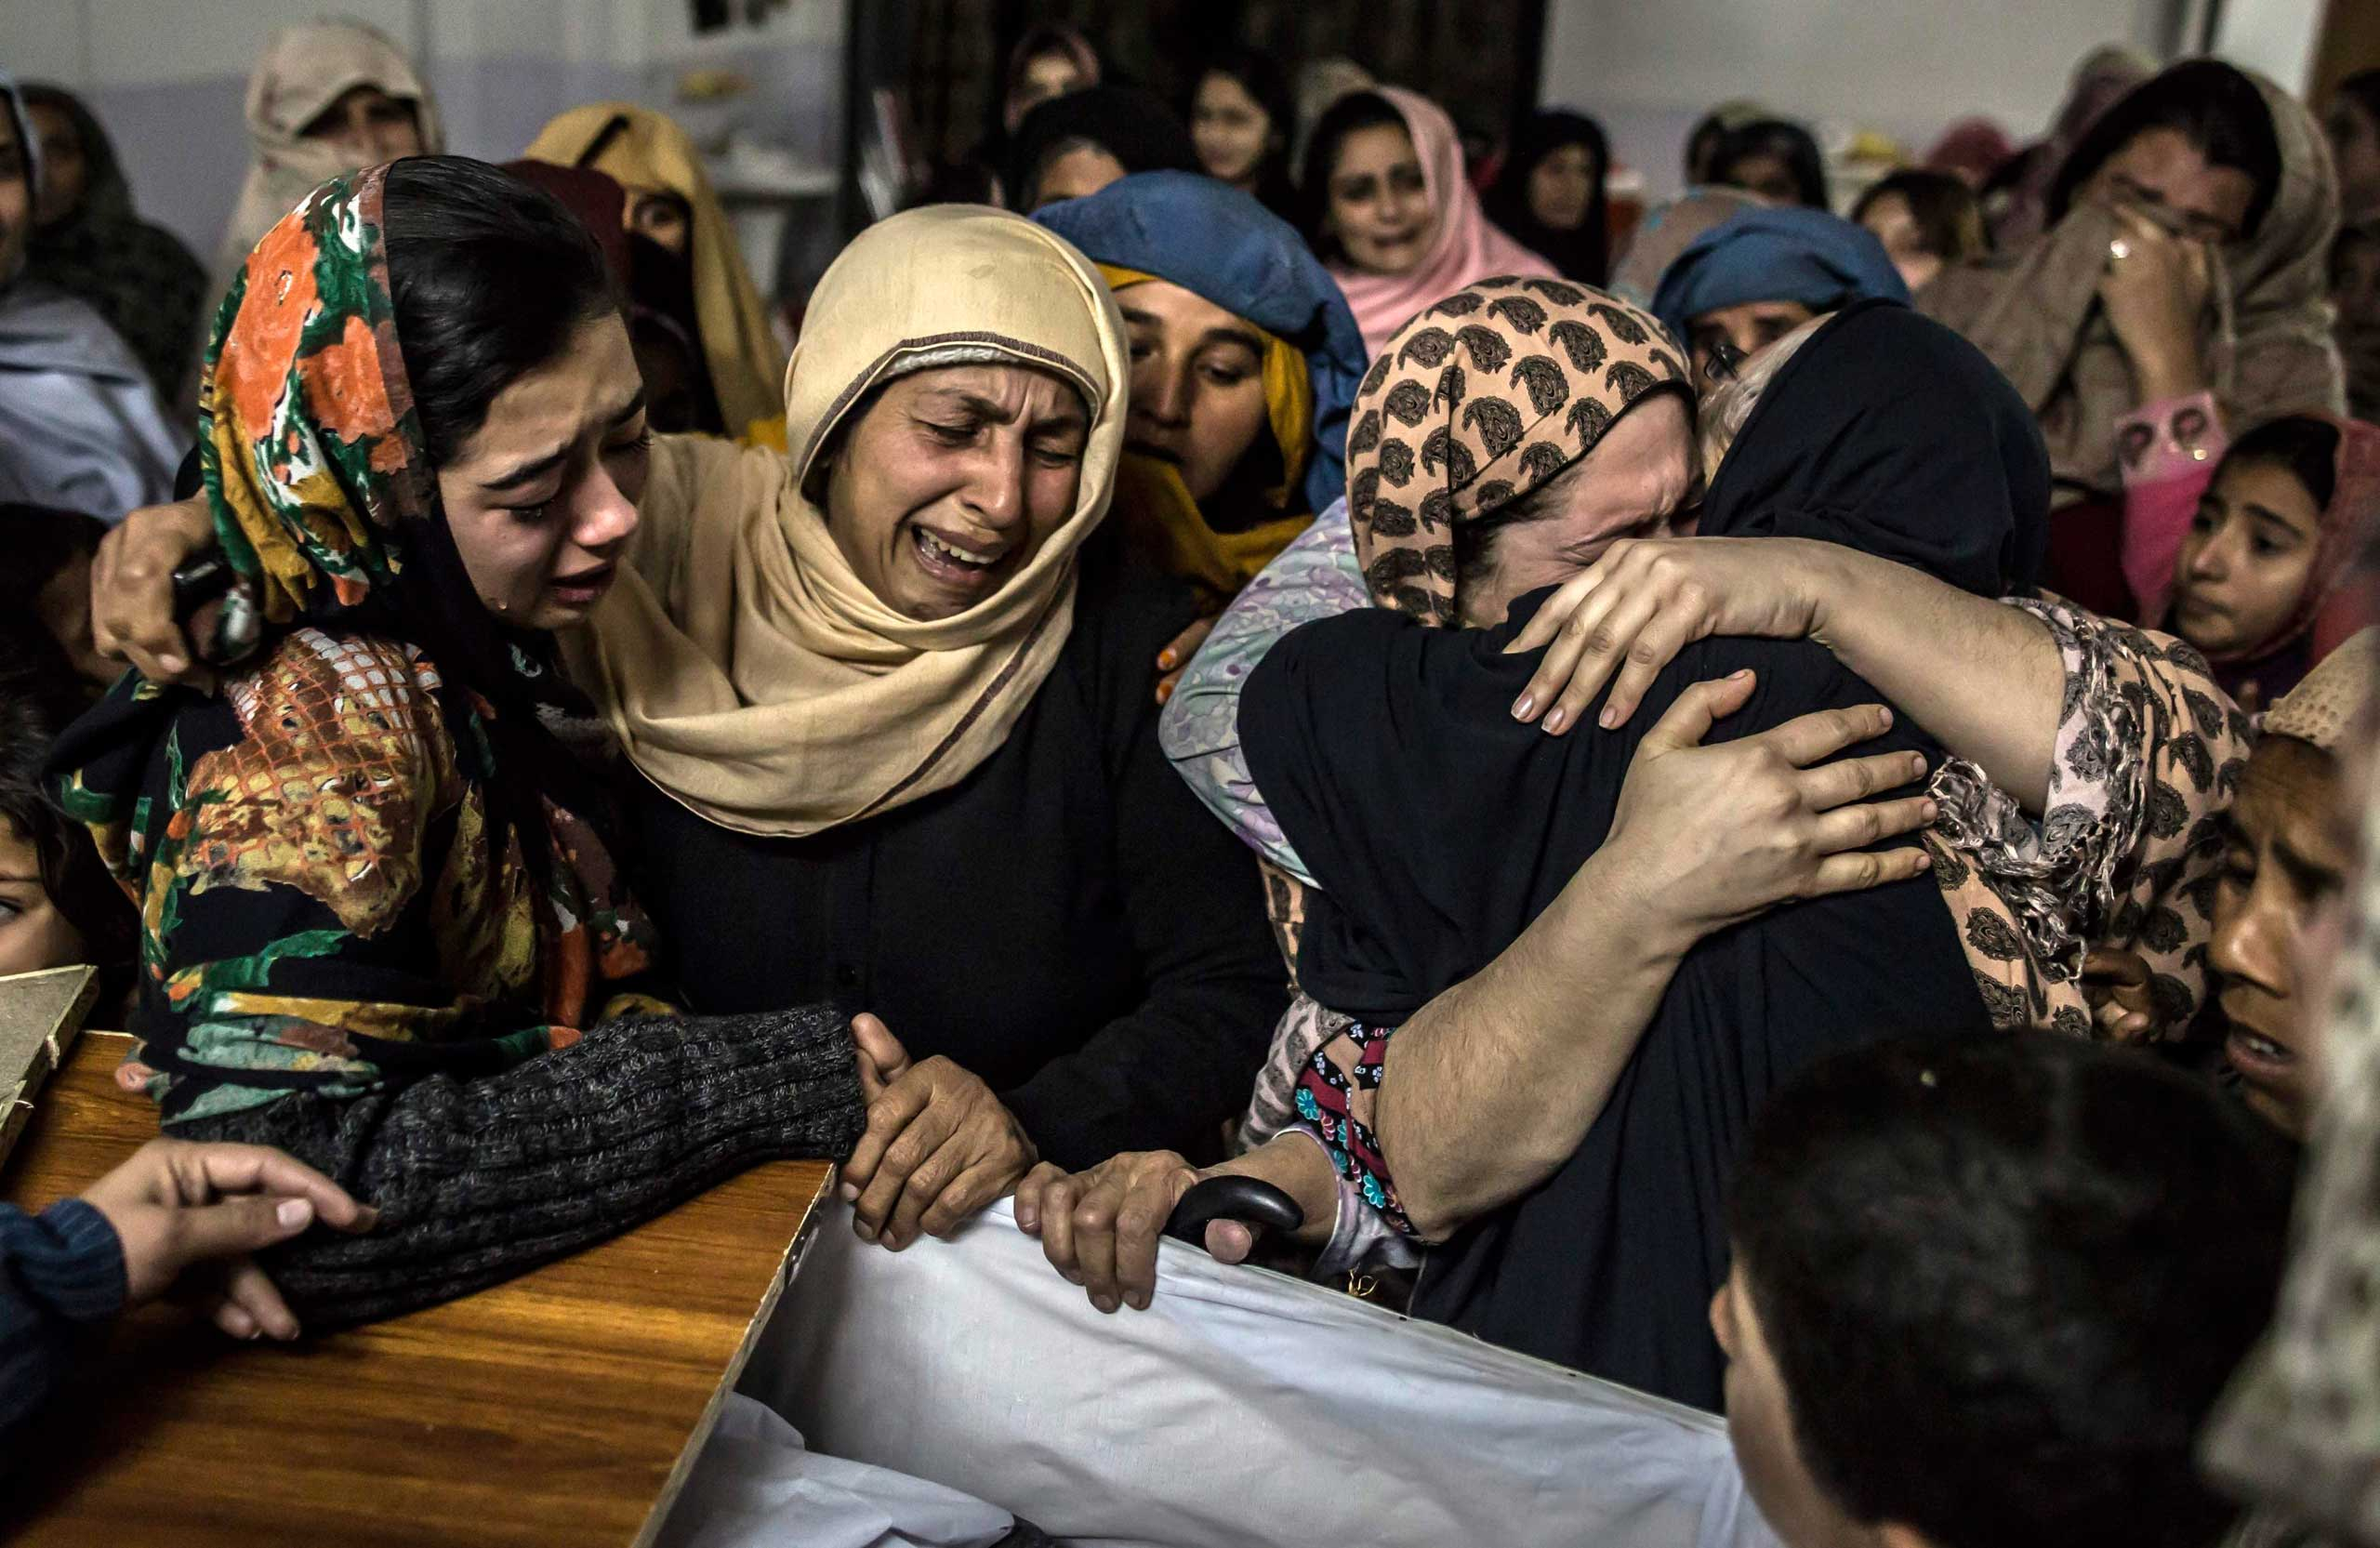 Dec. 16, 2014. Women mourn their relative Mohammed Ali Khan, 15, a student who was killed during an attack by Taliban gunmen on the Army Public School, at his house in Peshawar Pakistan. At least 132 students and nine staff members were killed after Taliban gunmen broke into a school in the Pakistani city of Peshawar and opened fire.